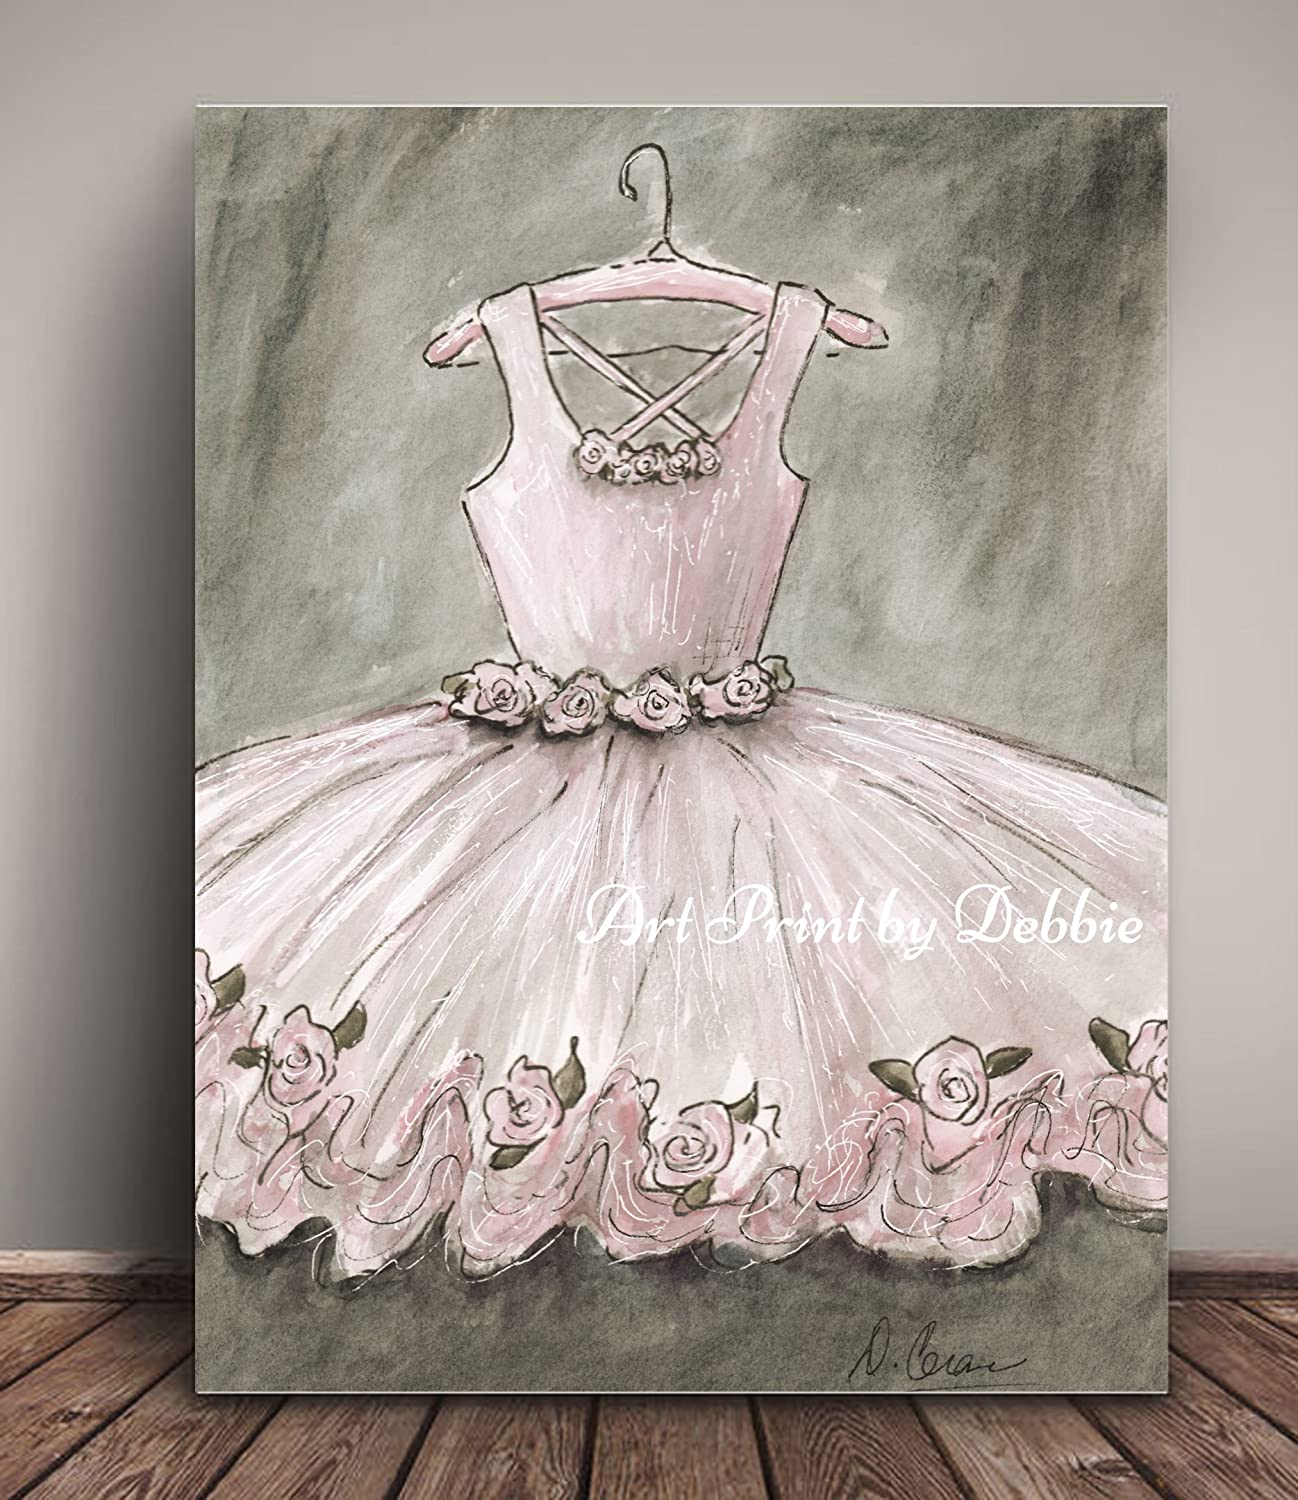 Set Of 2 Vintage Bedroom Prints Blush Pink Ballet Nursery Wall Art Girls Ballerina Room Decor Personalized Artwork 6 Sizes 5x7 to 24x36 Tutu And Pointe Shoes